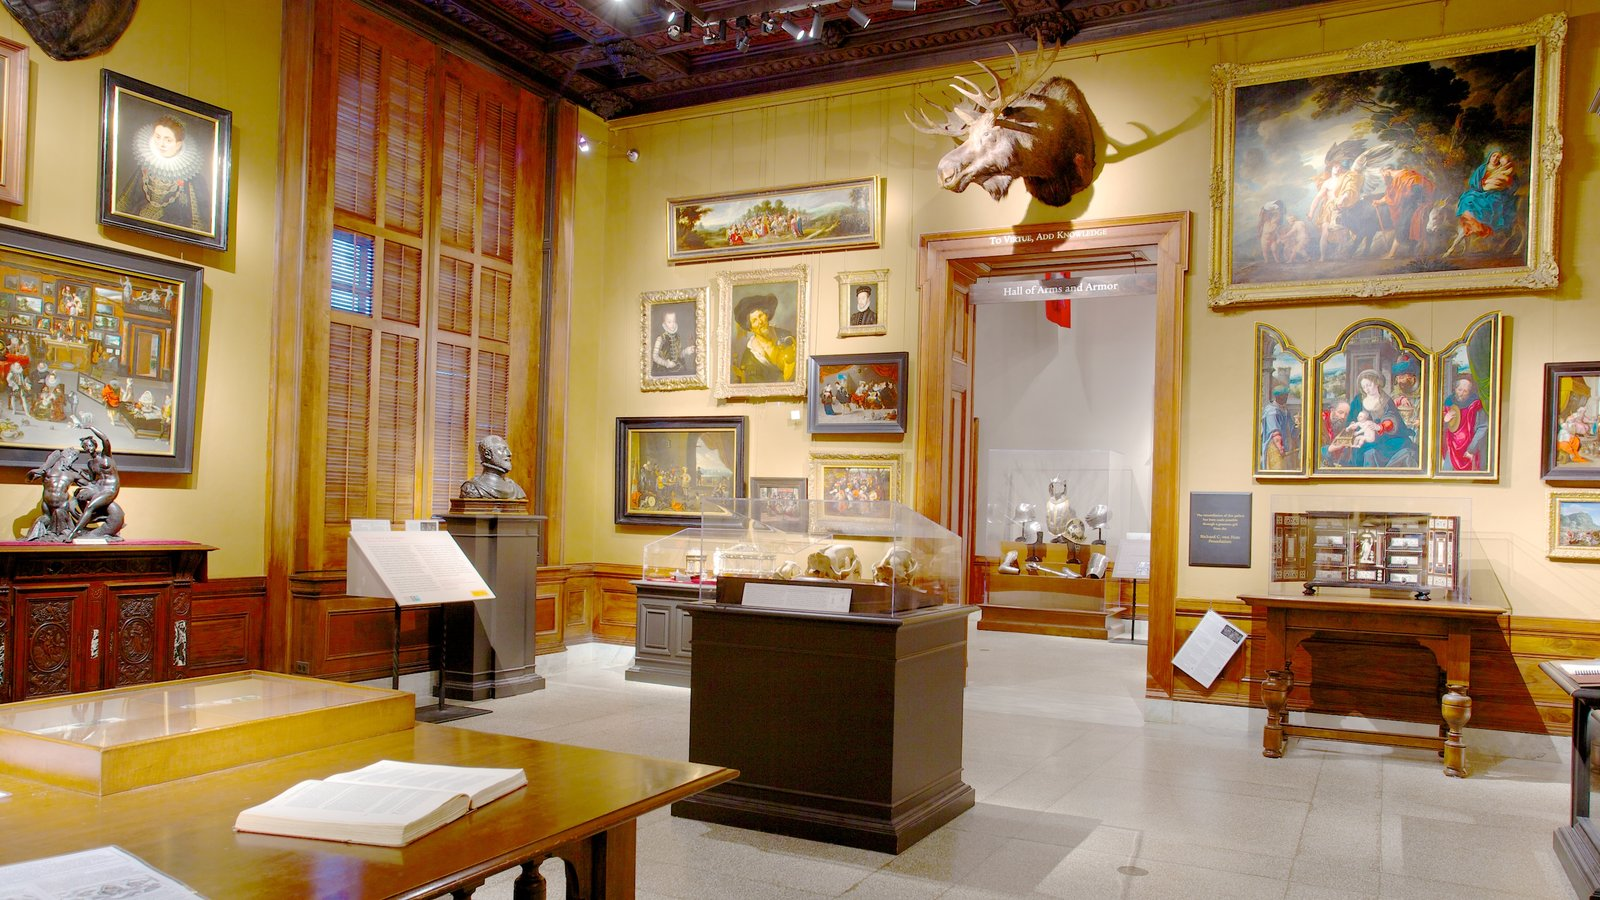 Walters Art  Museum featuring interior views and art